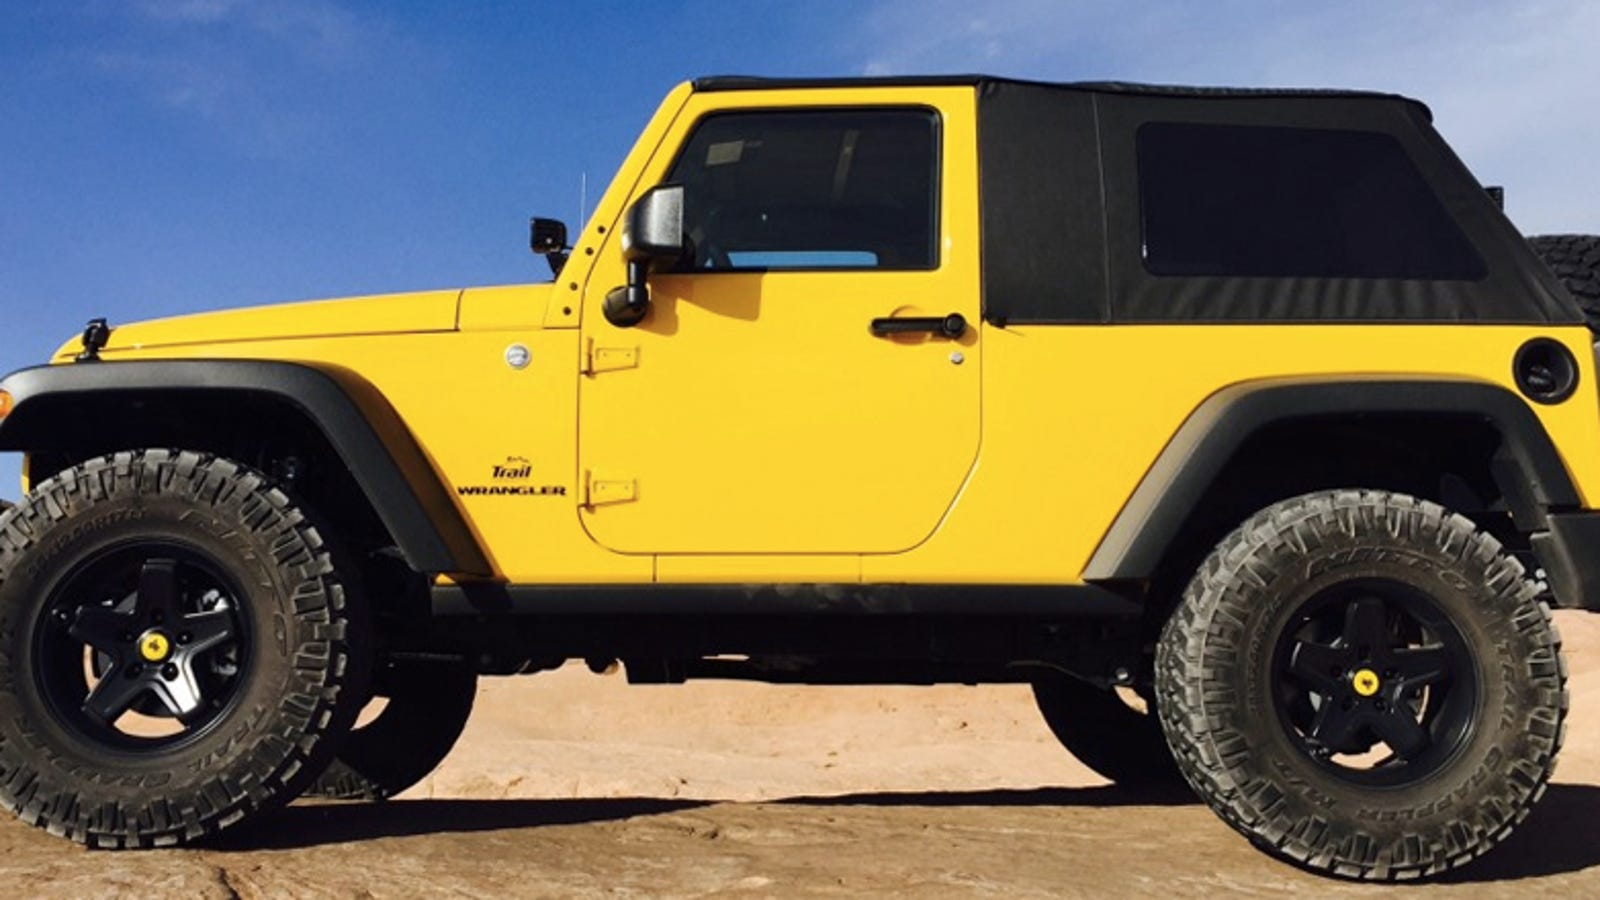 The Rare And Coveted Jeep Wrangler Lj Is Back 2005 Frame